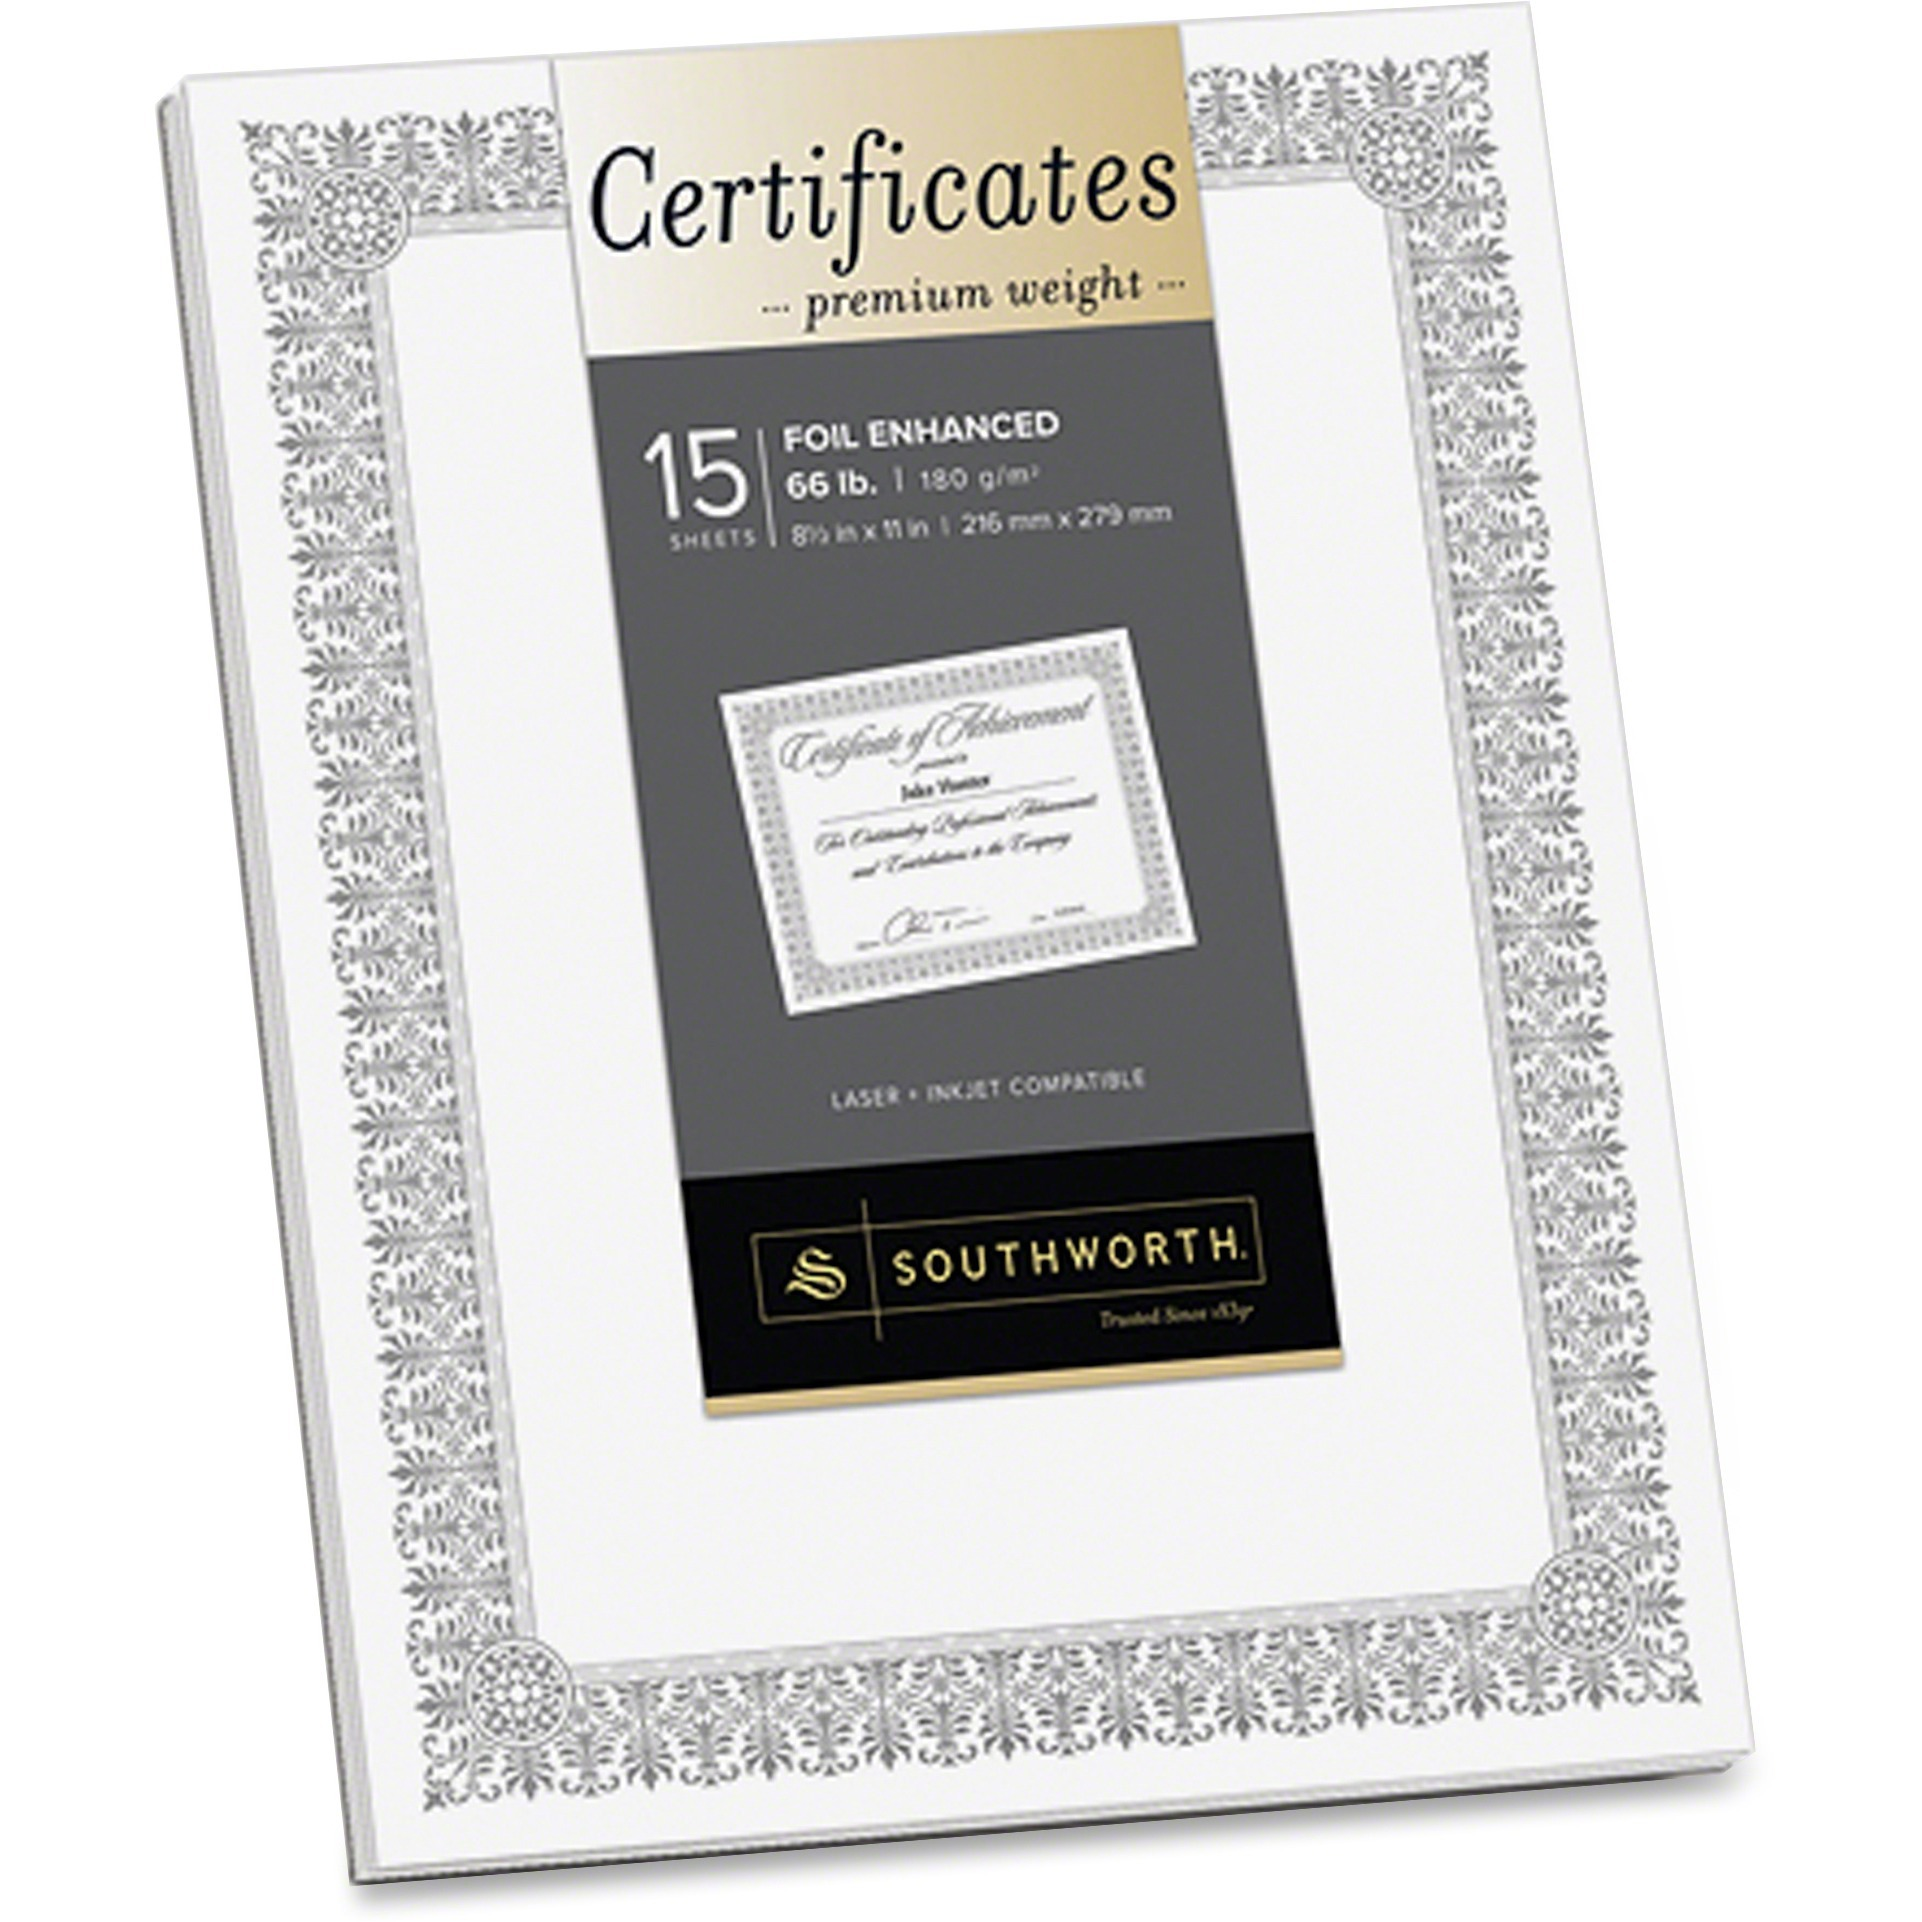 Southworth, SOUCTP1W, Foil Enhanced Certificates - Fleur Design, 15 / Pack, White,Silver